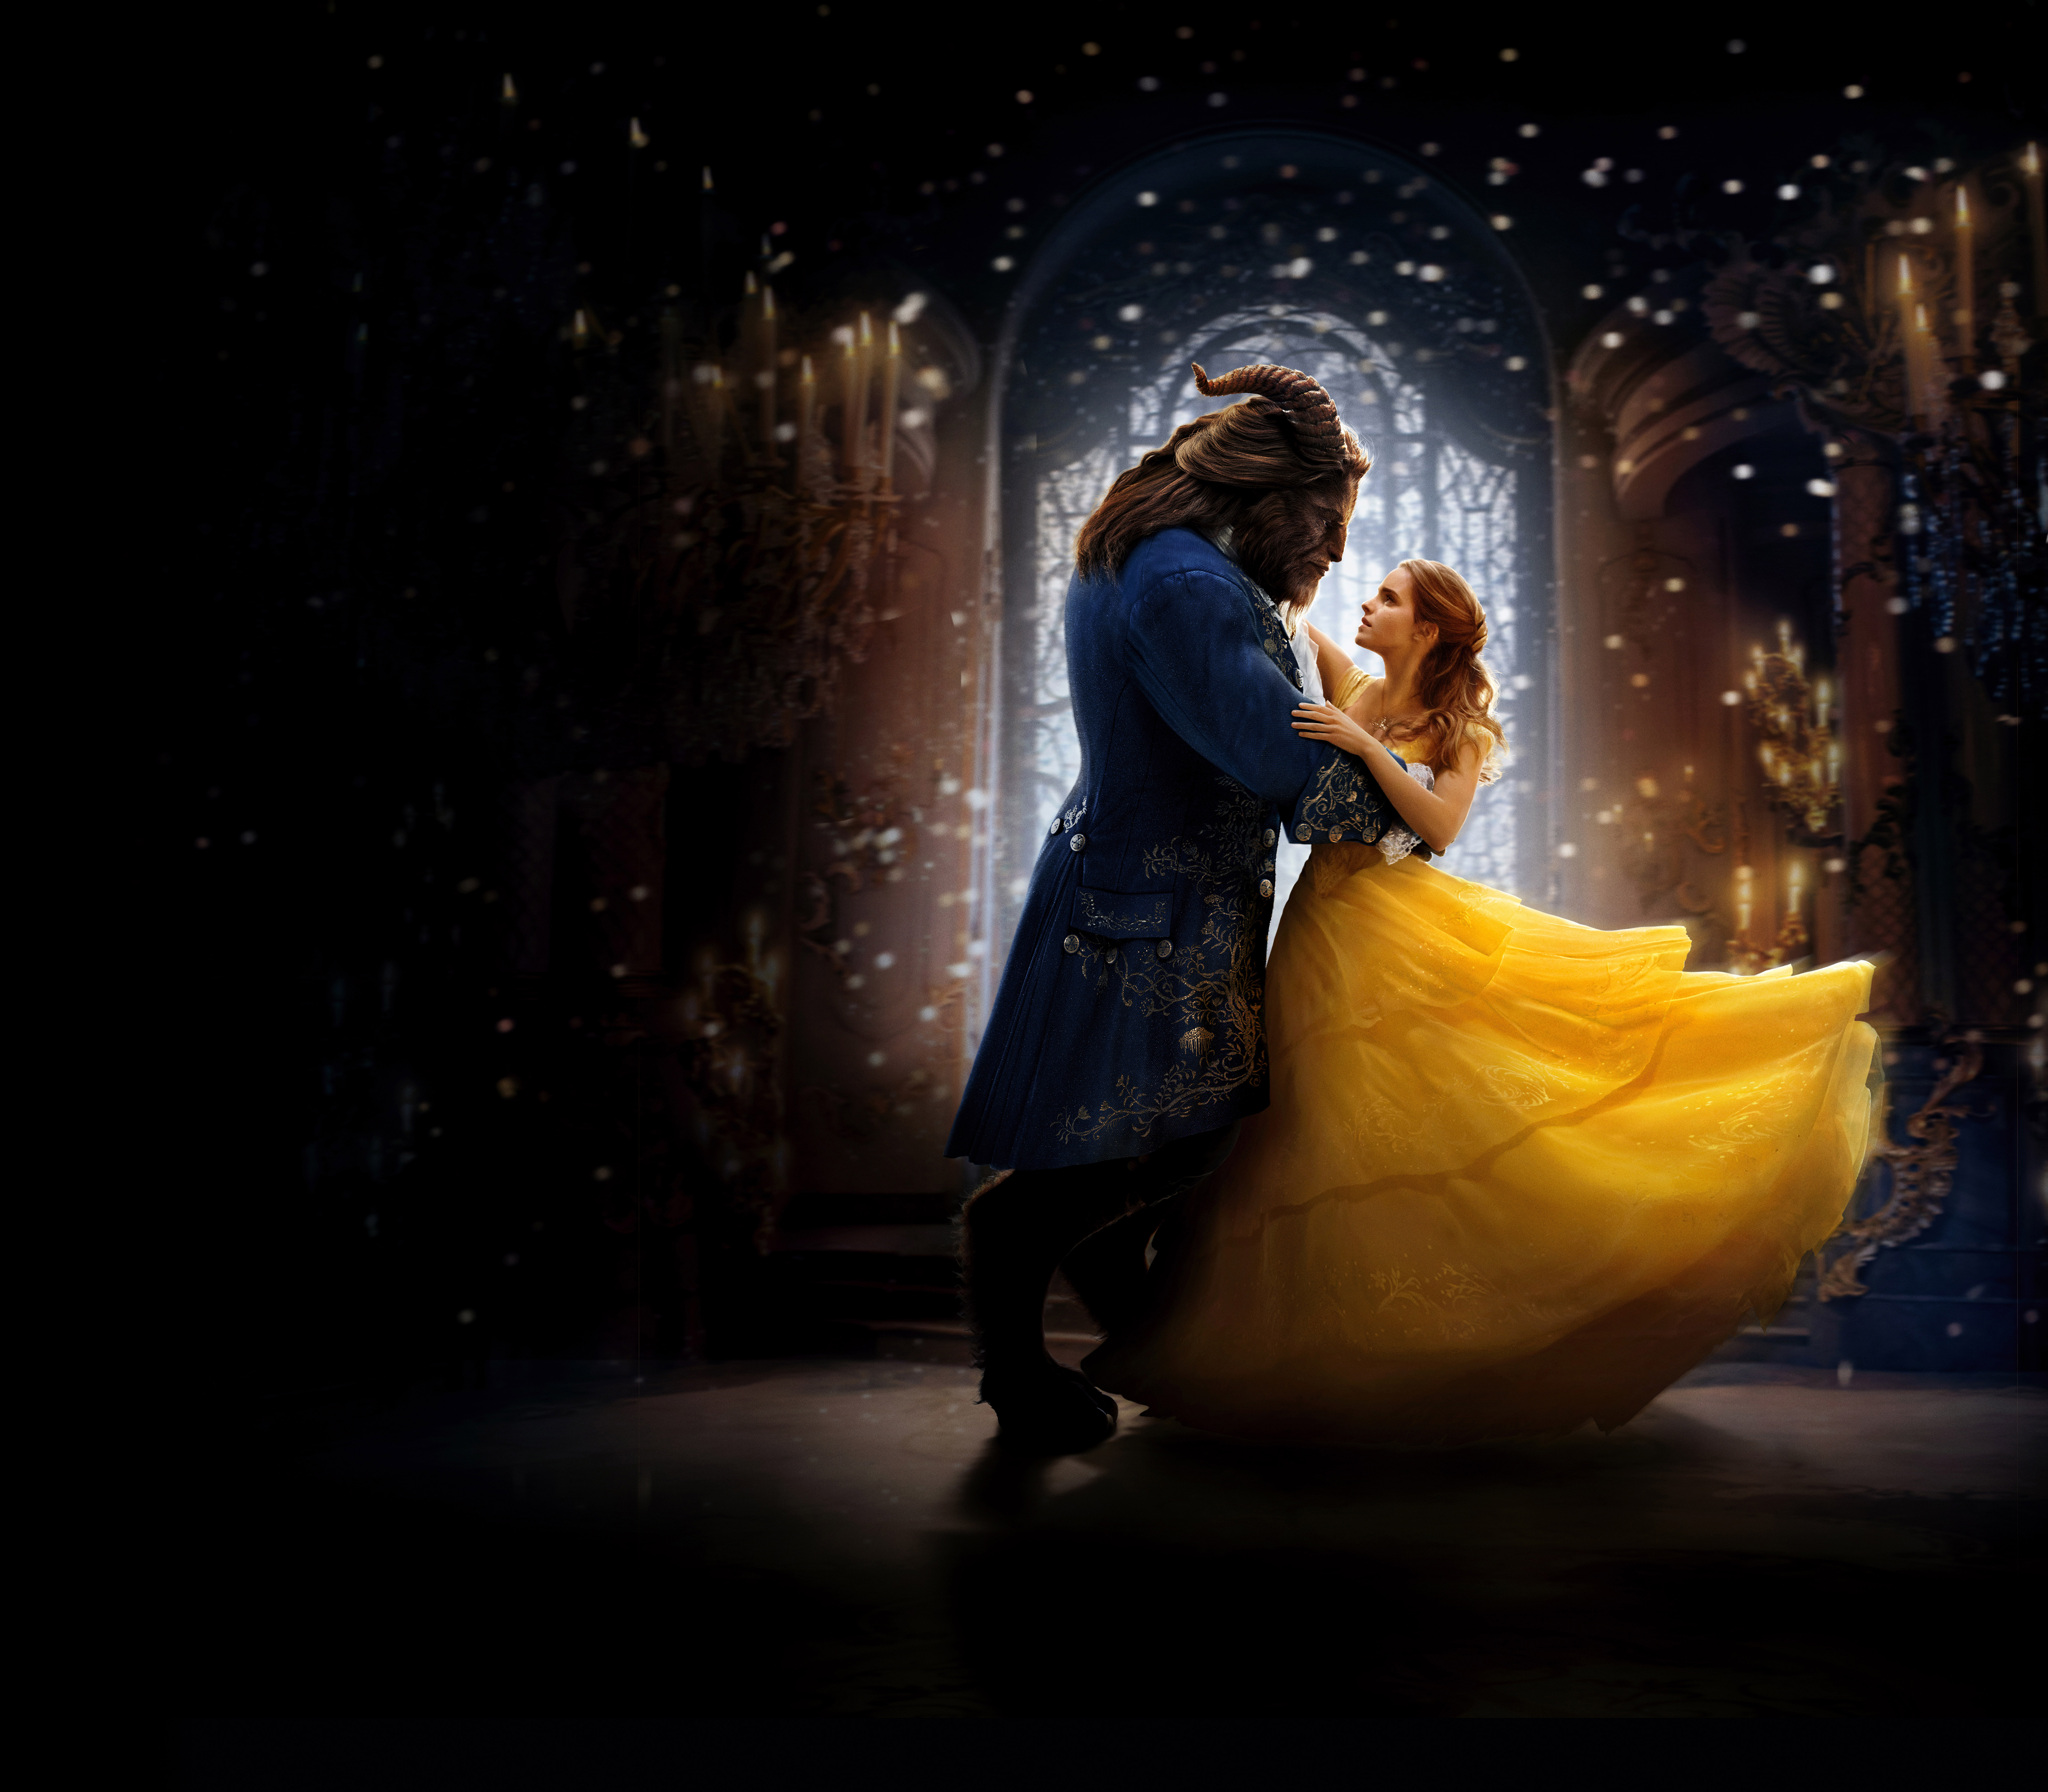 Beauty And The Beast HD, HD Movies, 4k Wallpapers, Images